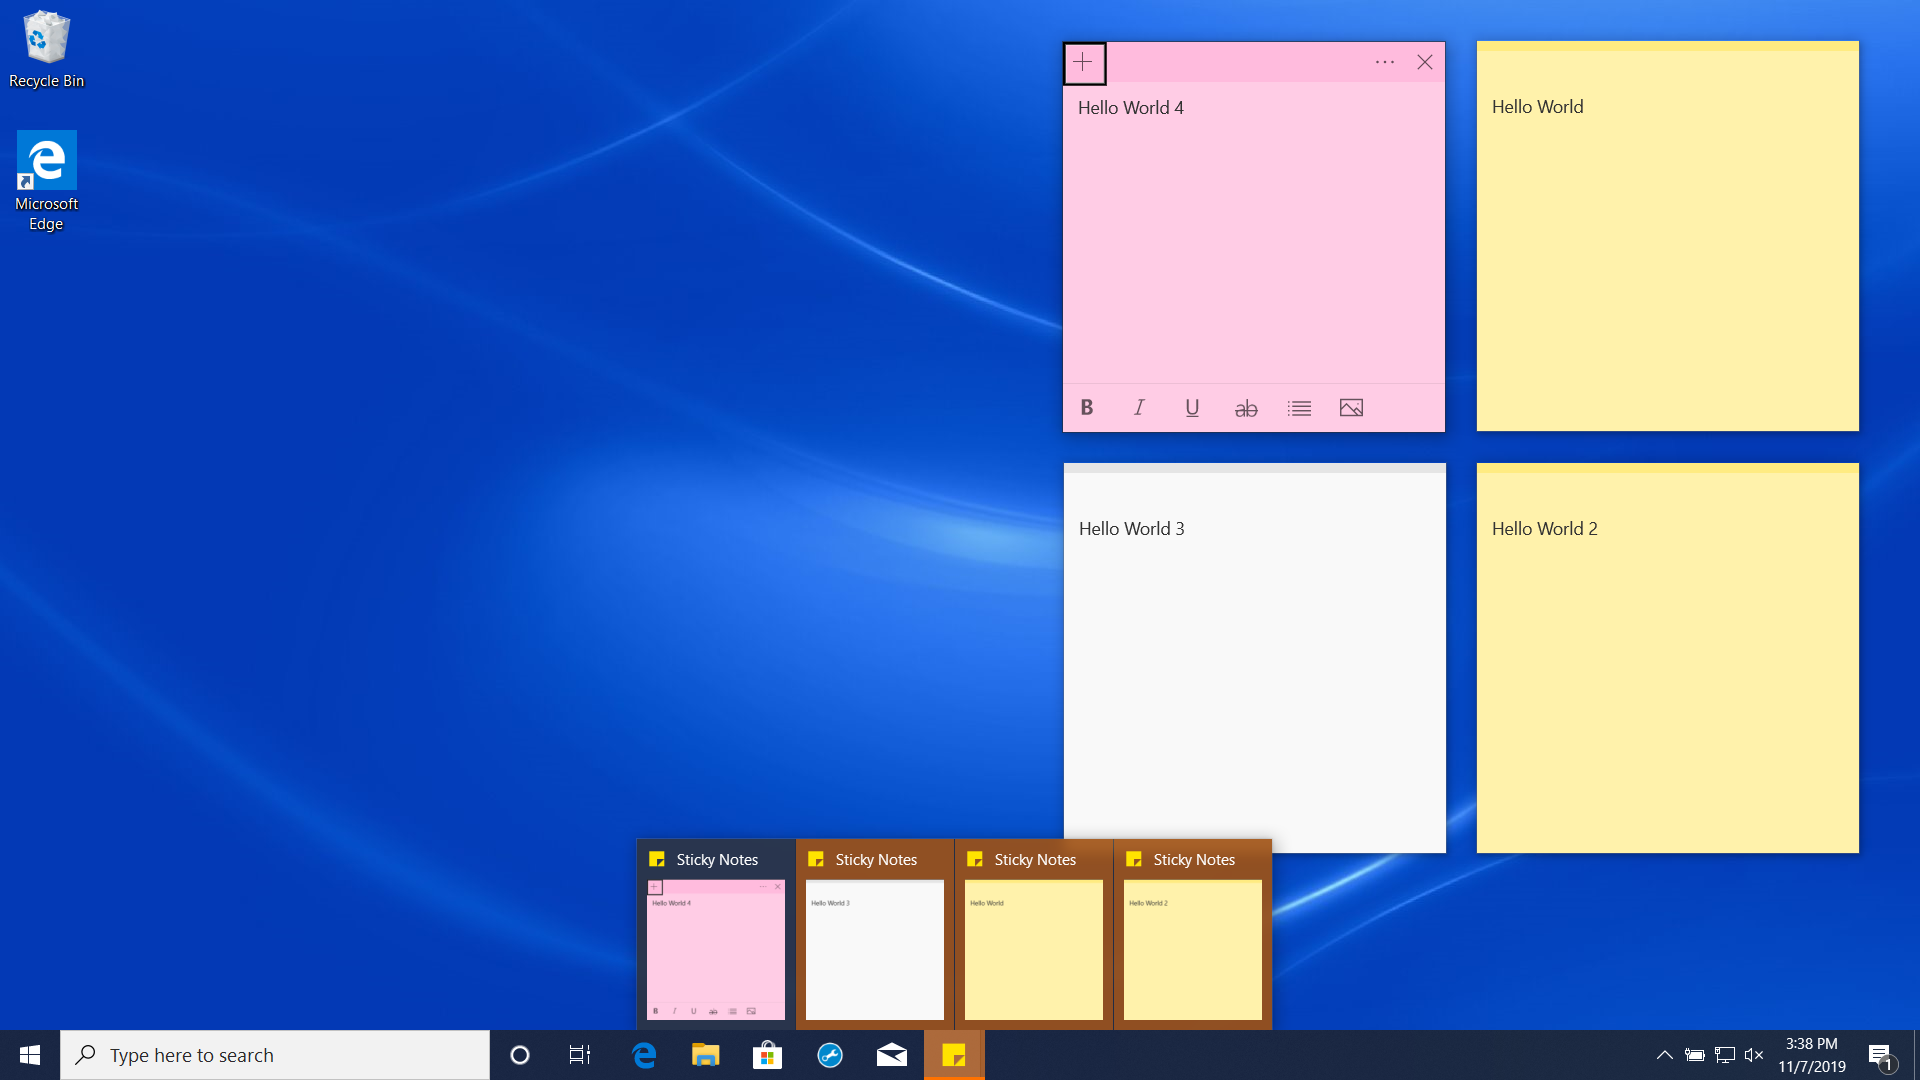 Sticky Notes always 'require attention' flashing when first logon (Win 10 1903 update) 353071c2-761f-49a7-9602-91e40ea850ee?upload=true.png